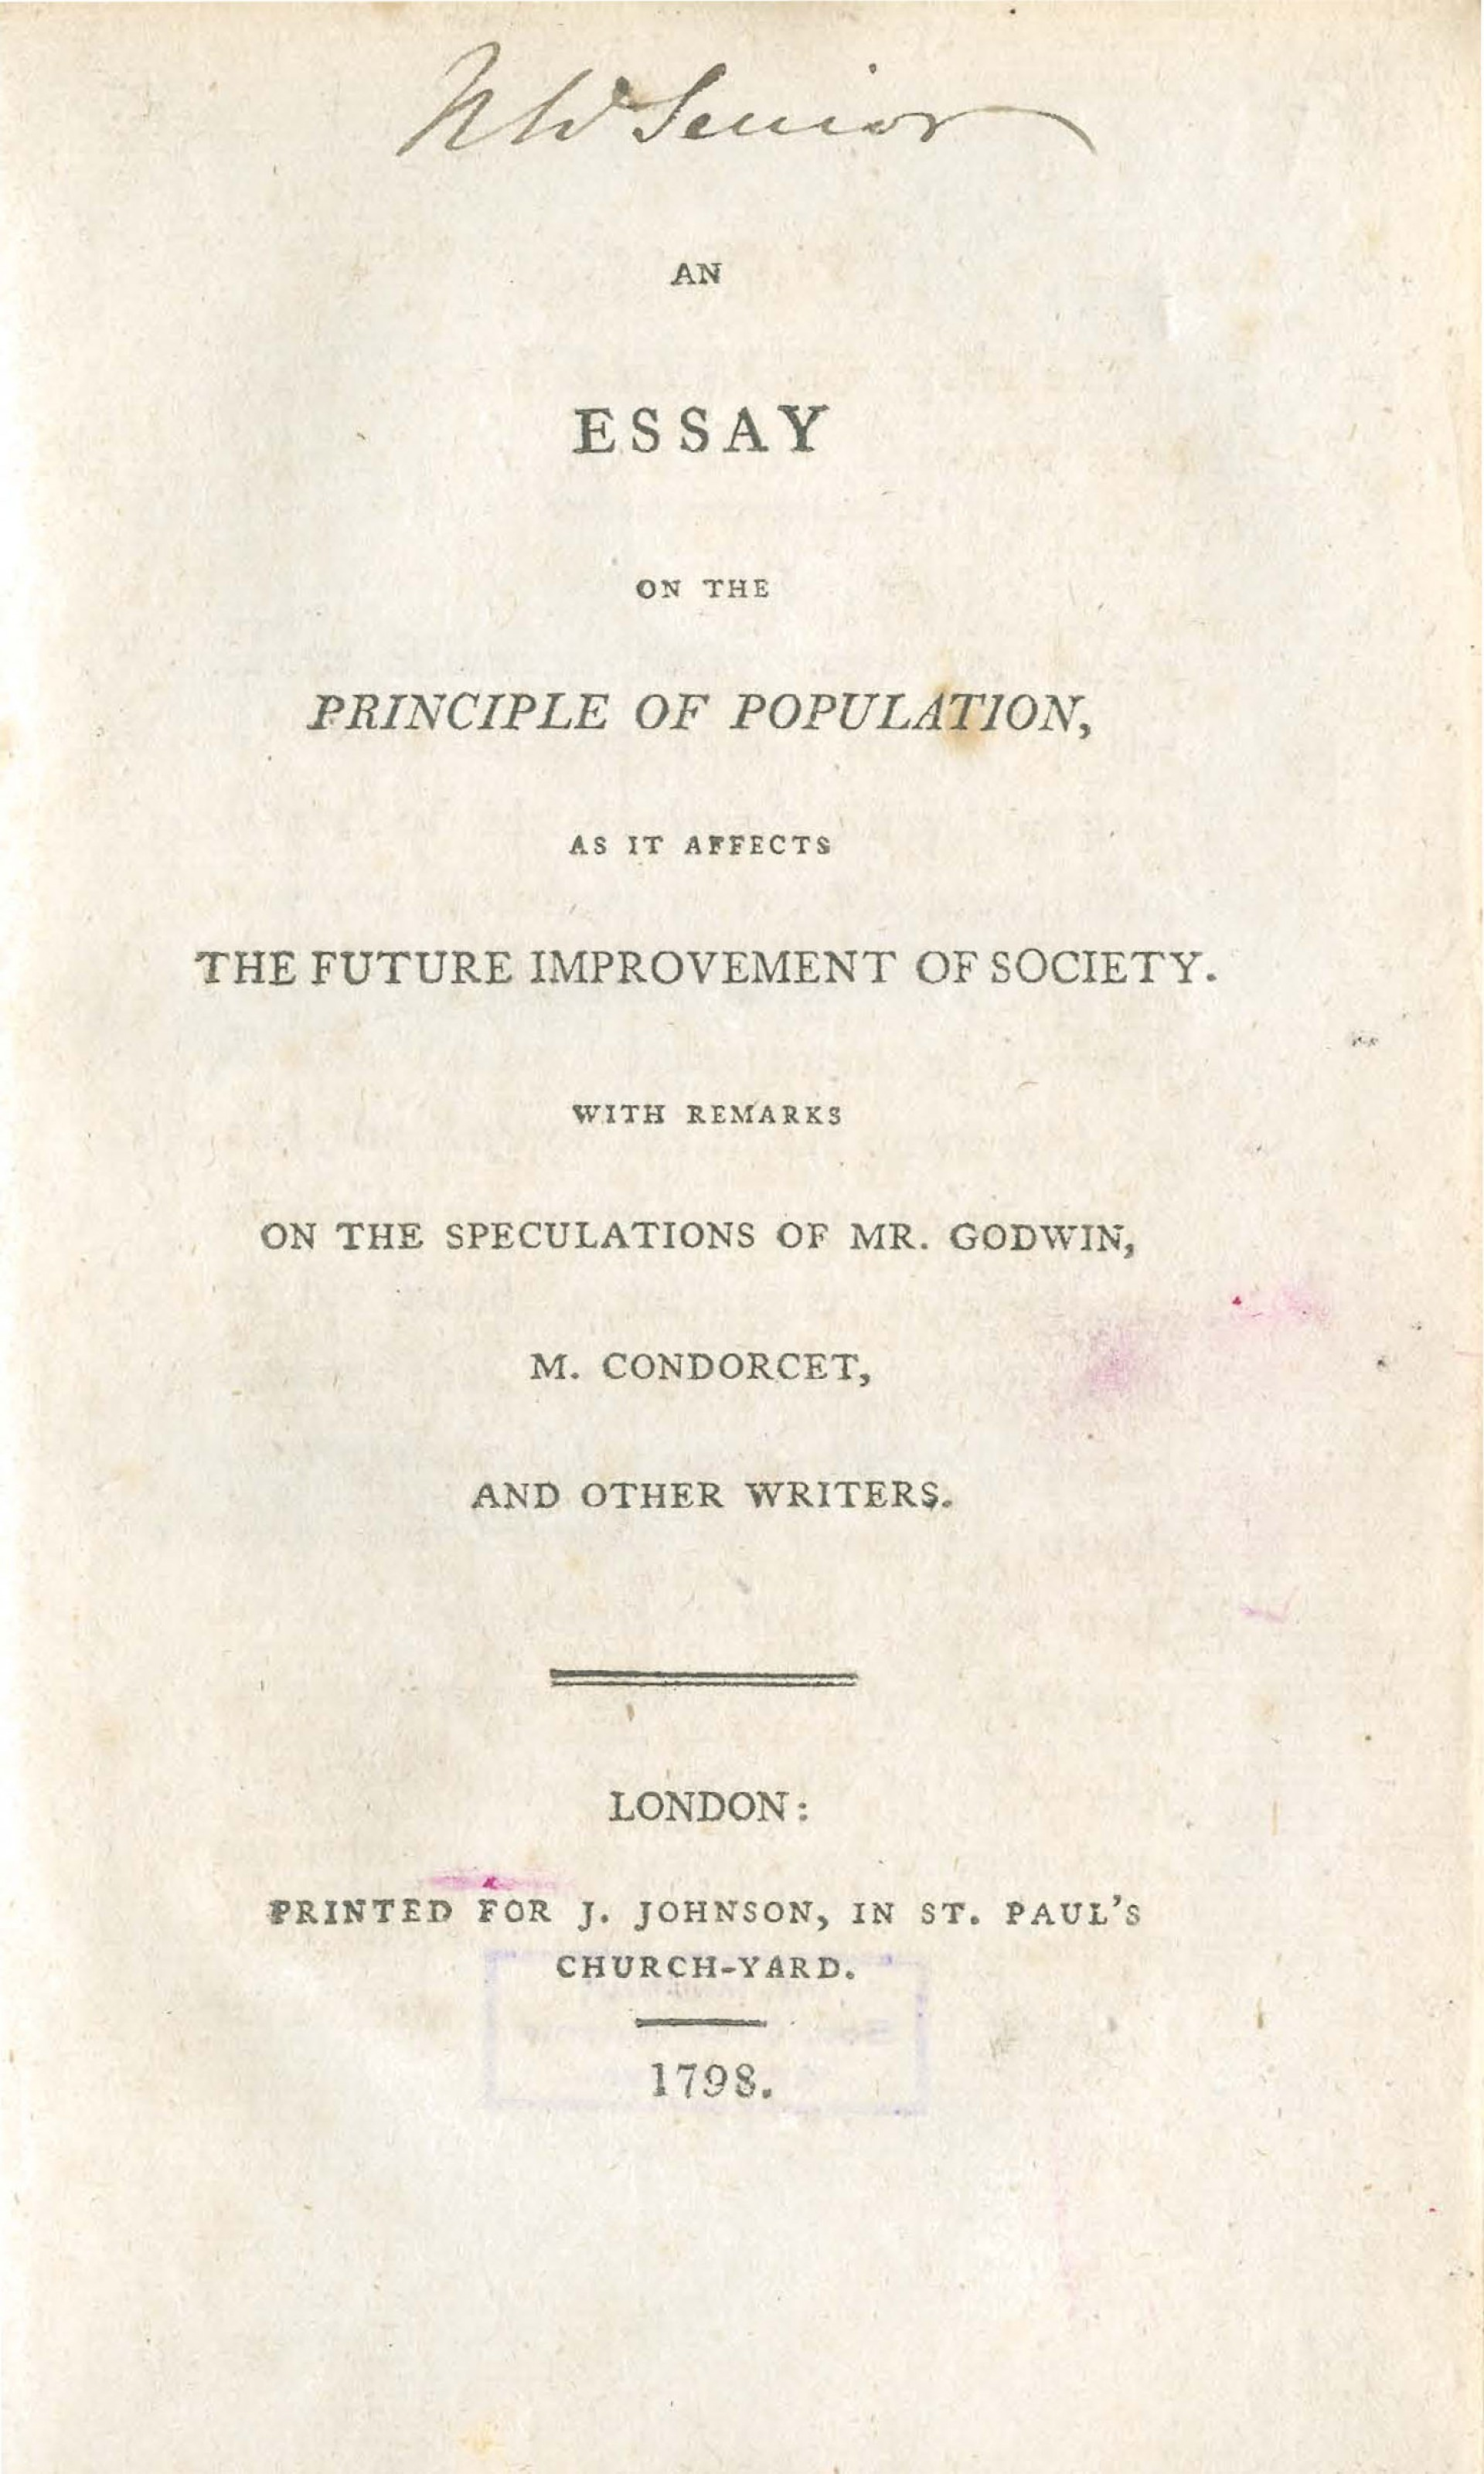 001 Thomas Malthus An Essay On The Principle Of Population Marvelous Summary Analysis Argued In His (1798) That 1920